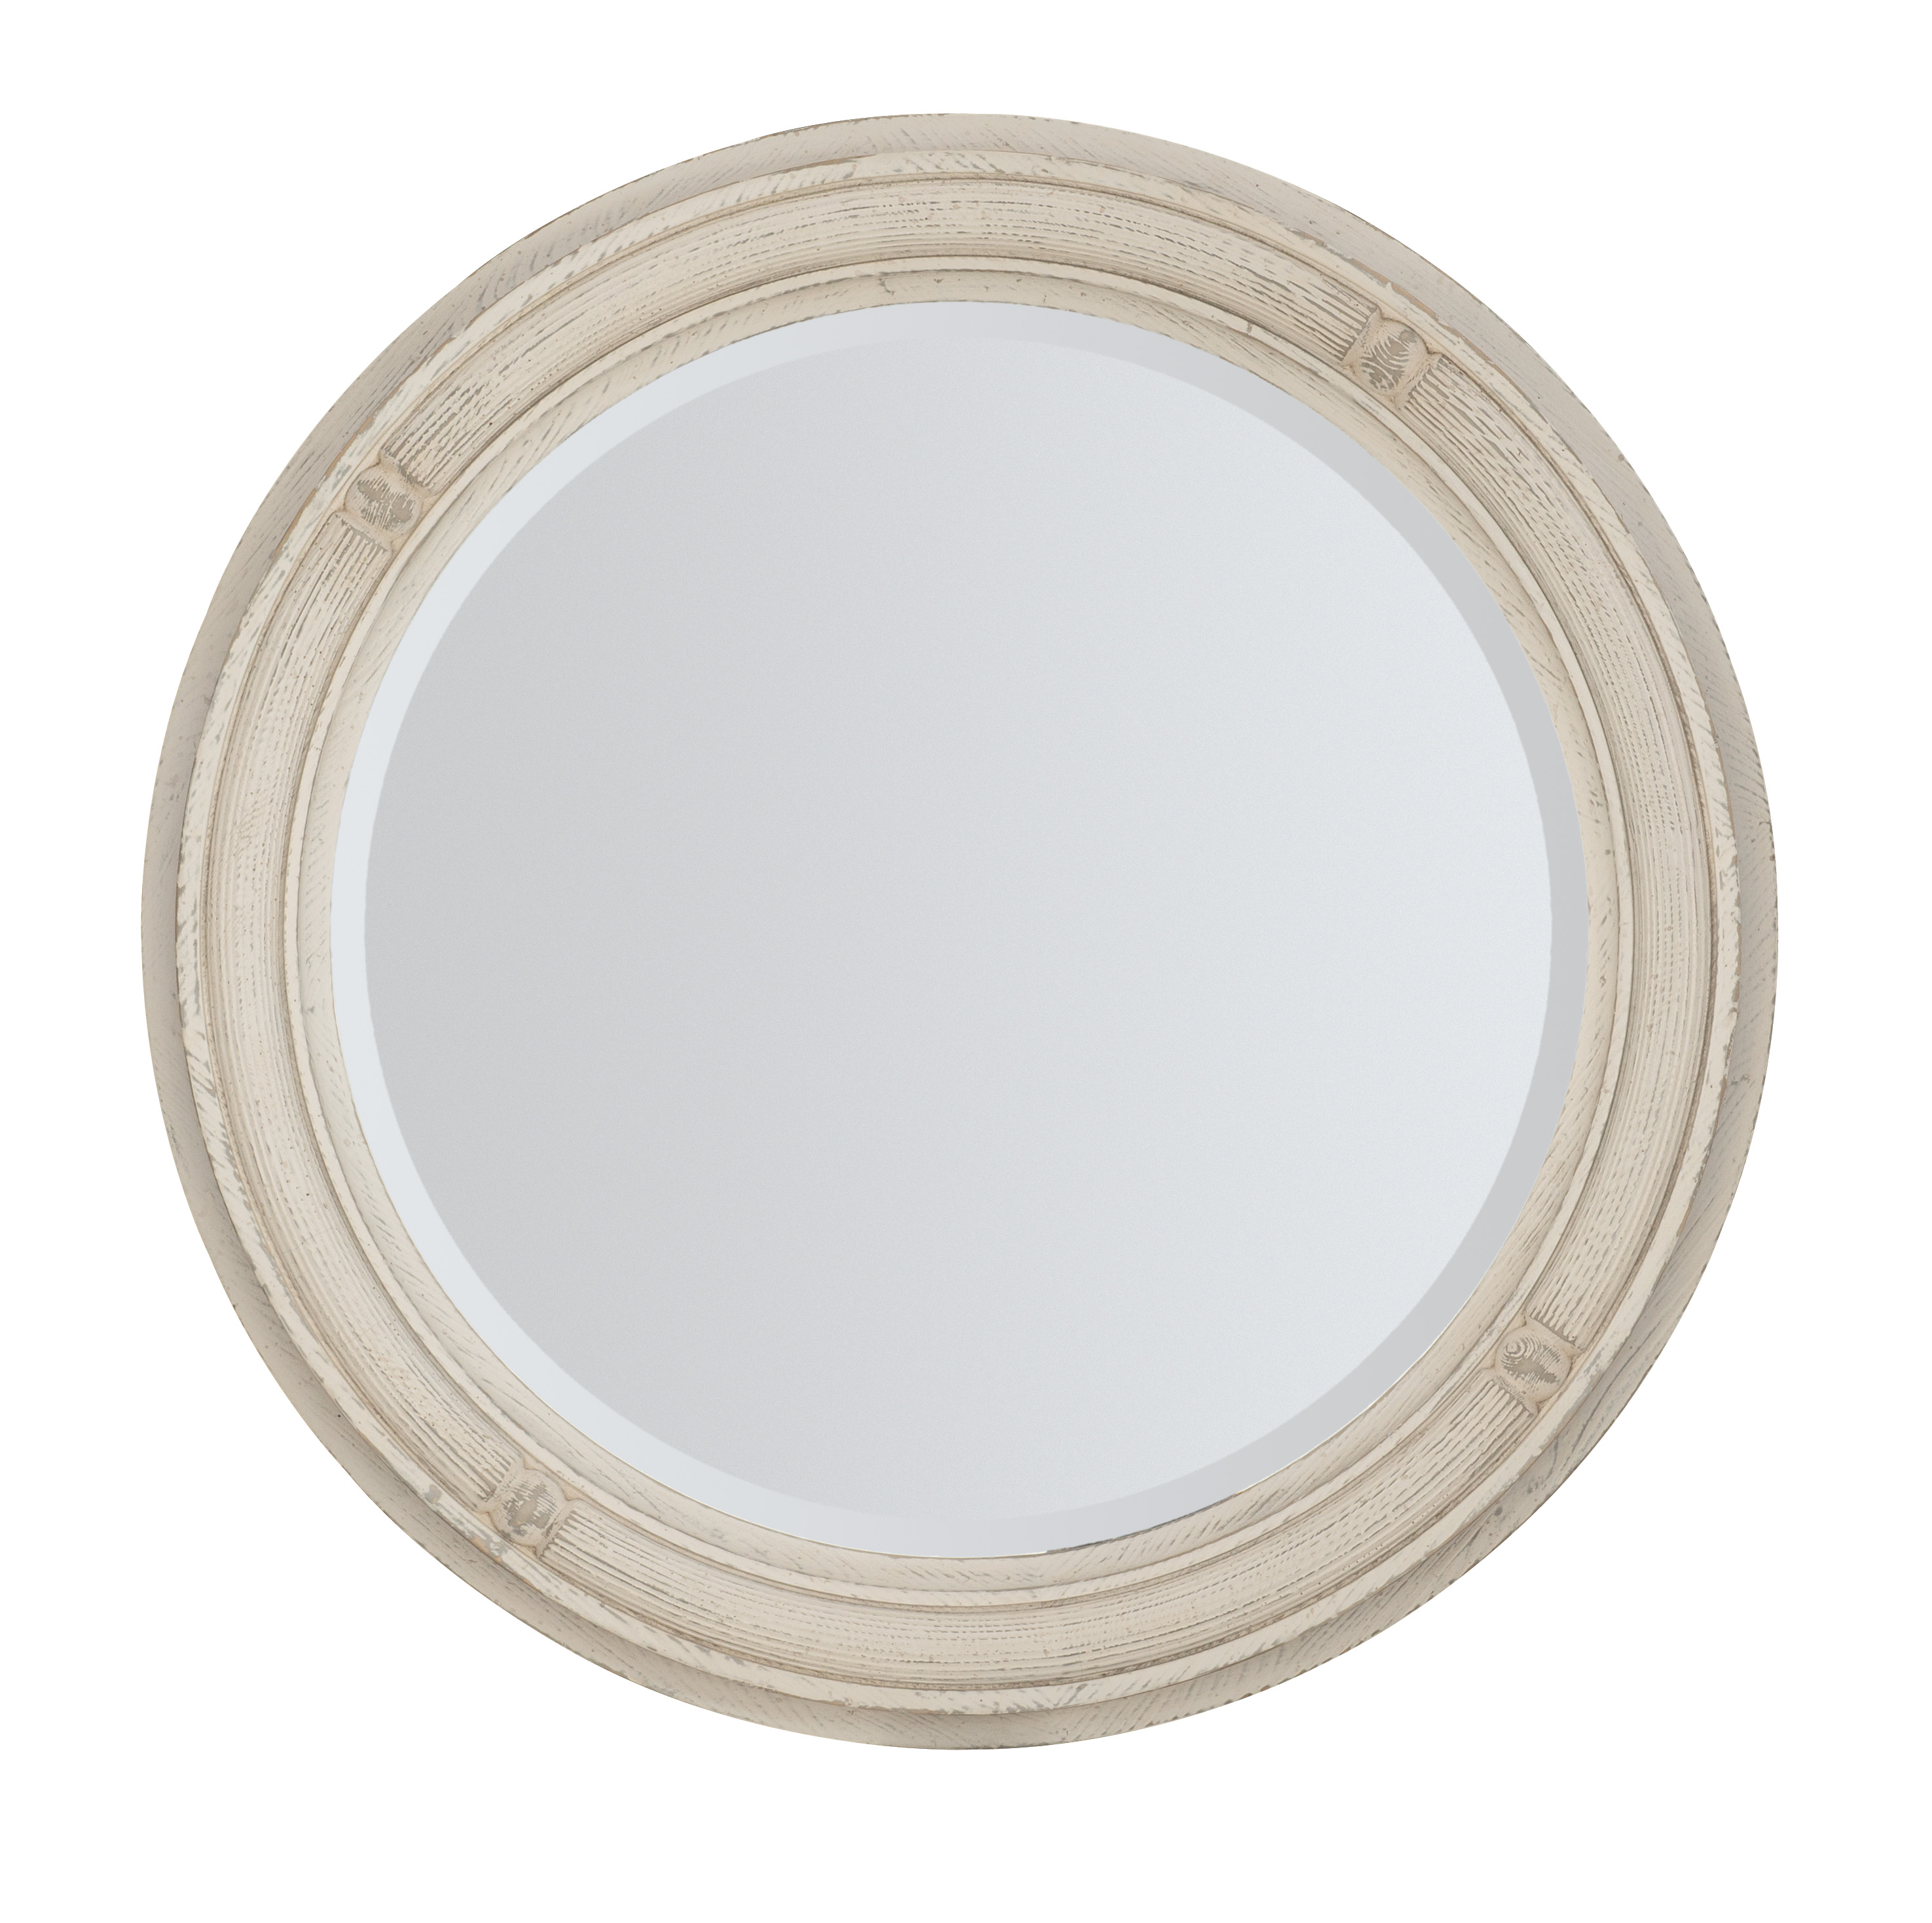 Traditions Round Mirror by Hooker Furniture at Gill Brothers Furniture